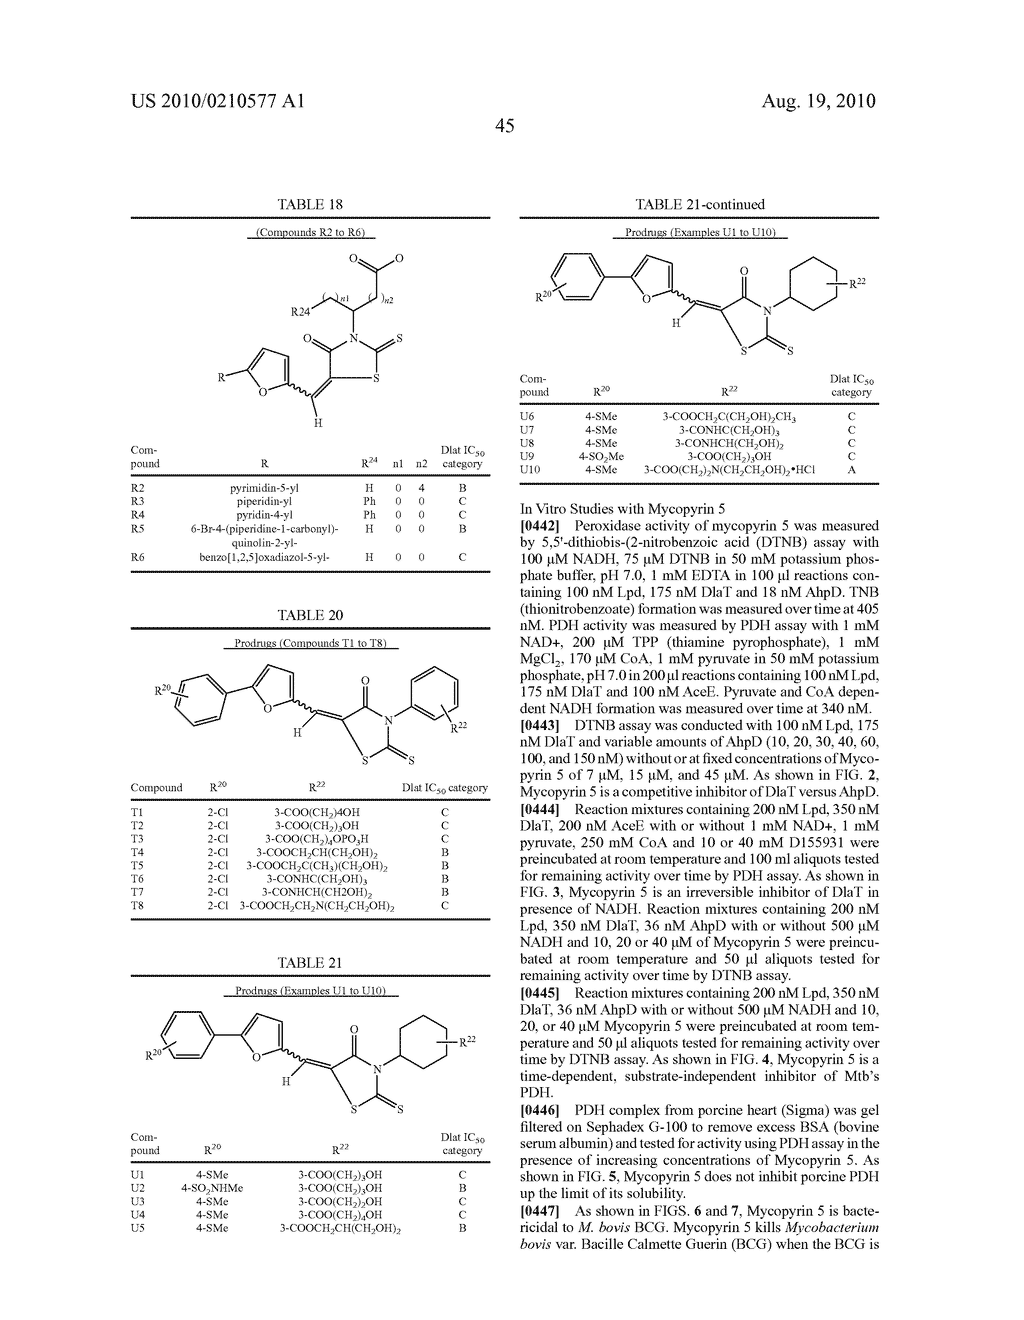 CYCLIC CARBOXYLIC ACID RHODANINE DERIVATIVES FOR THE TREATMENT AND PREVENTION OF TUBERCULOSIS - diagram, schematic, and image 55